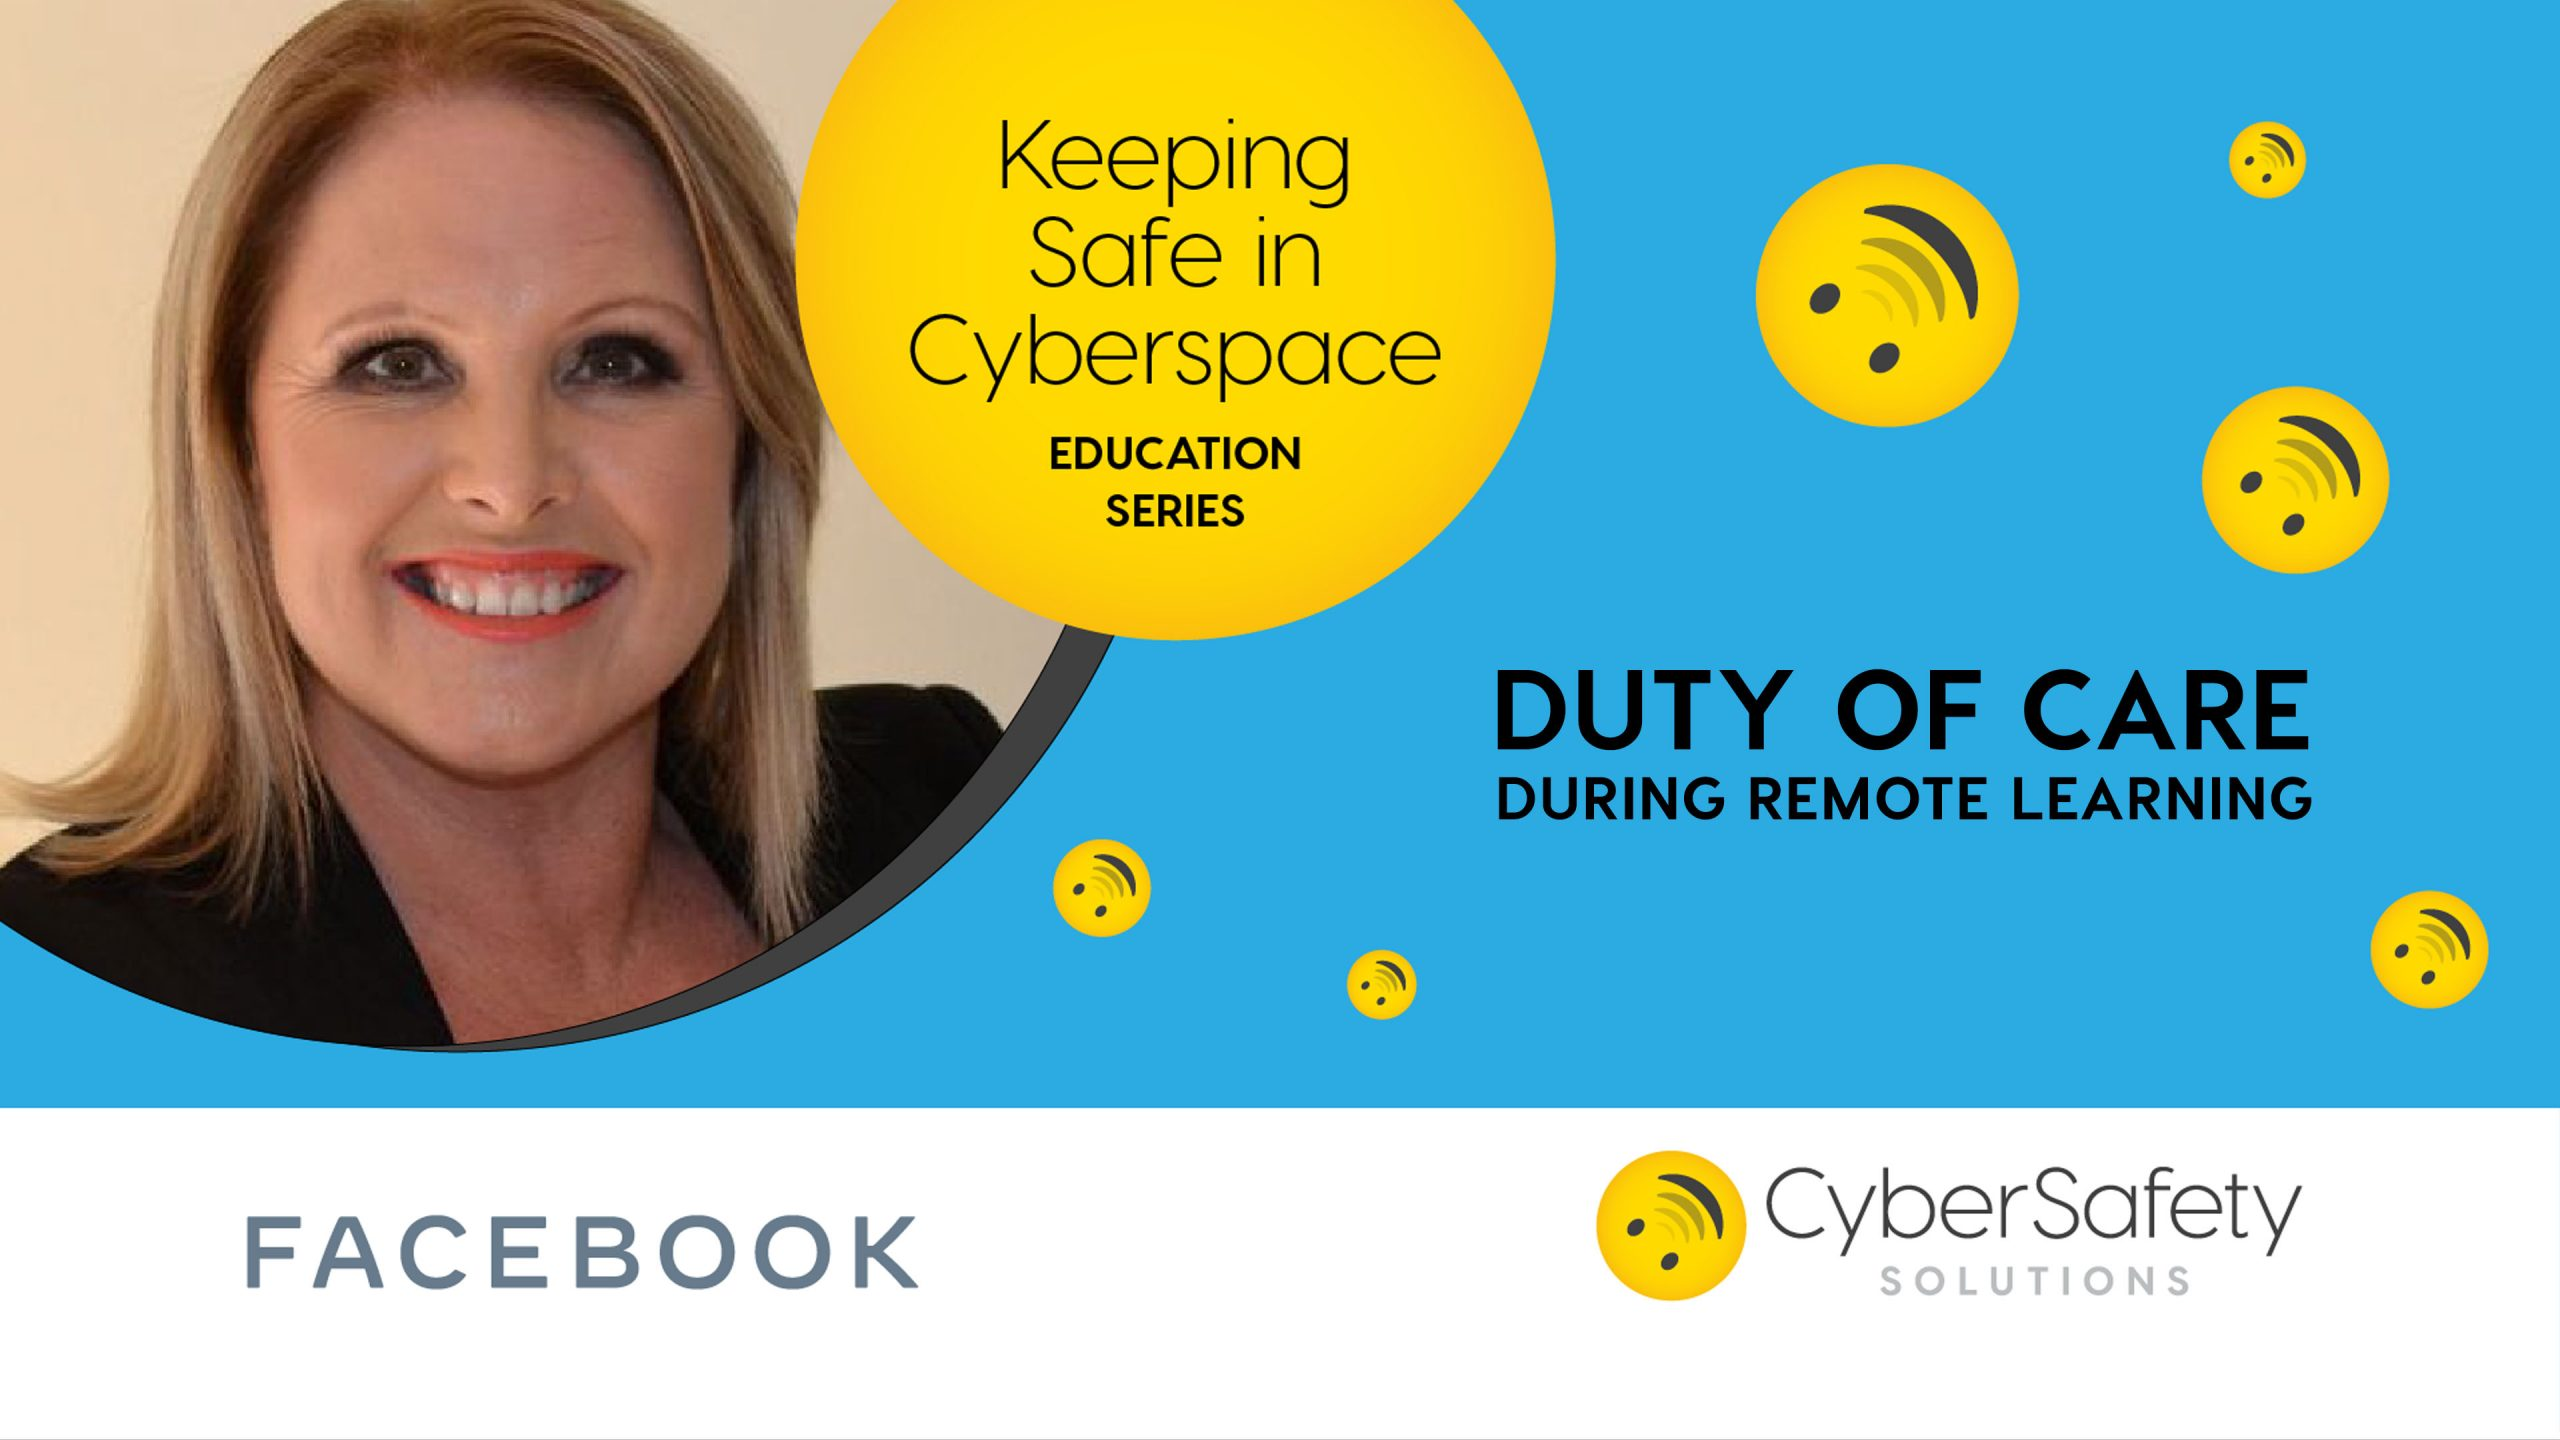 DUTY OF CARE DURING REMOTE LEARNING